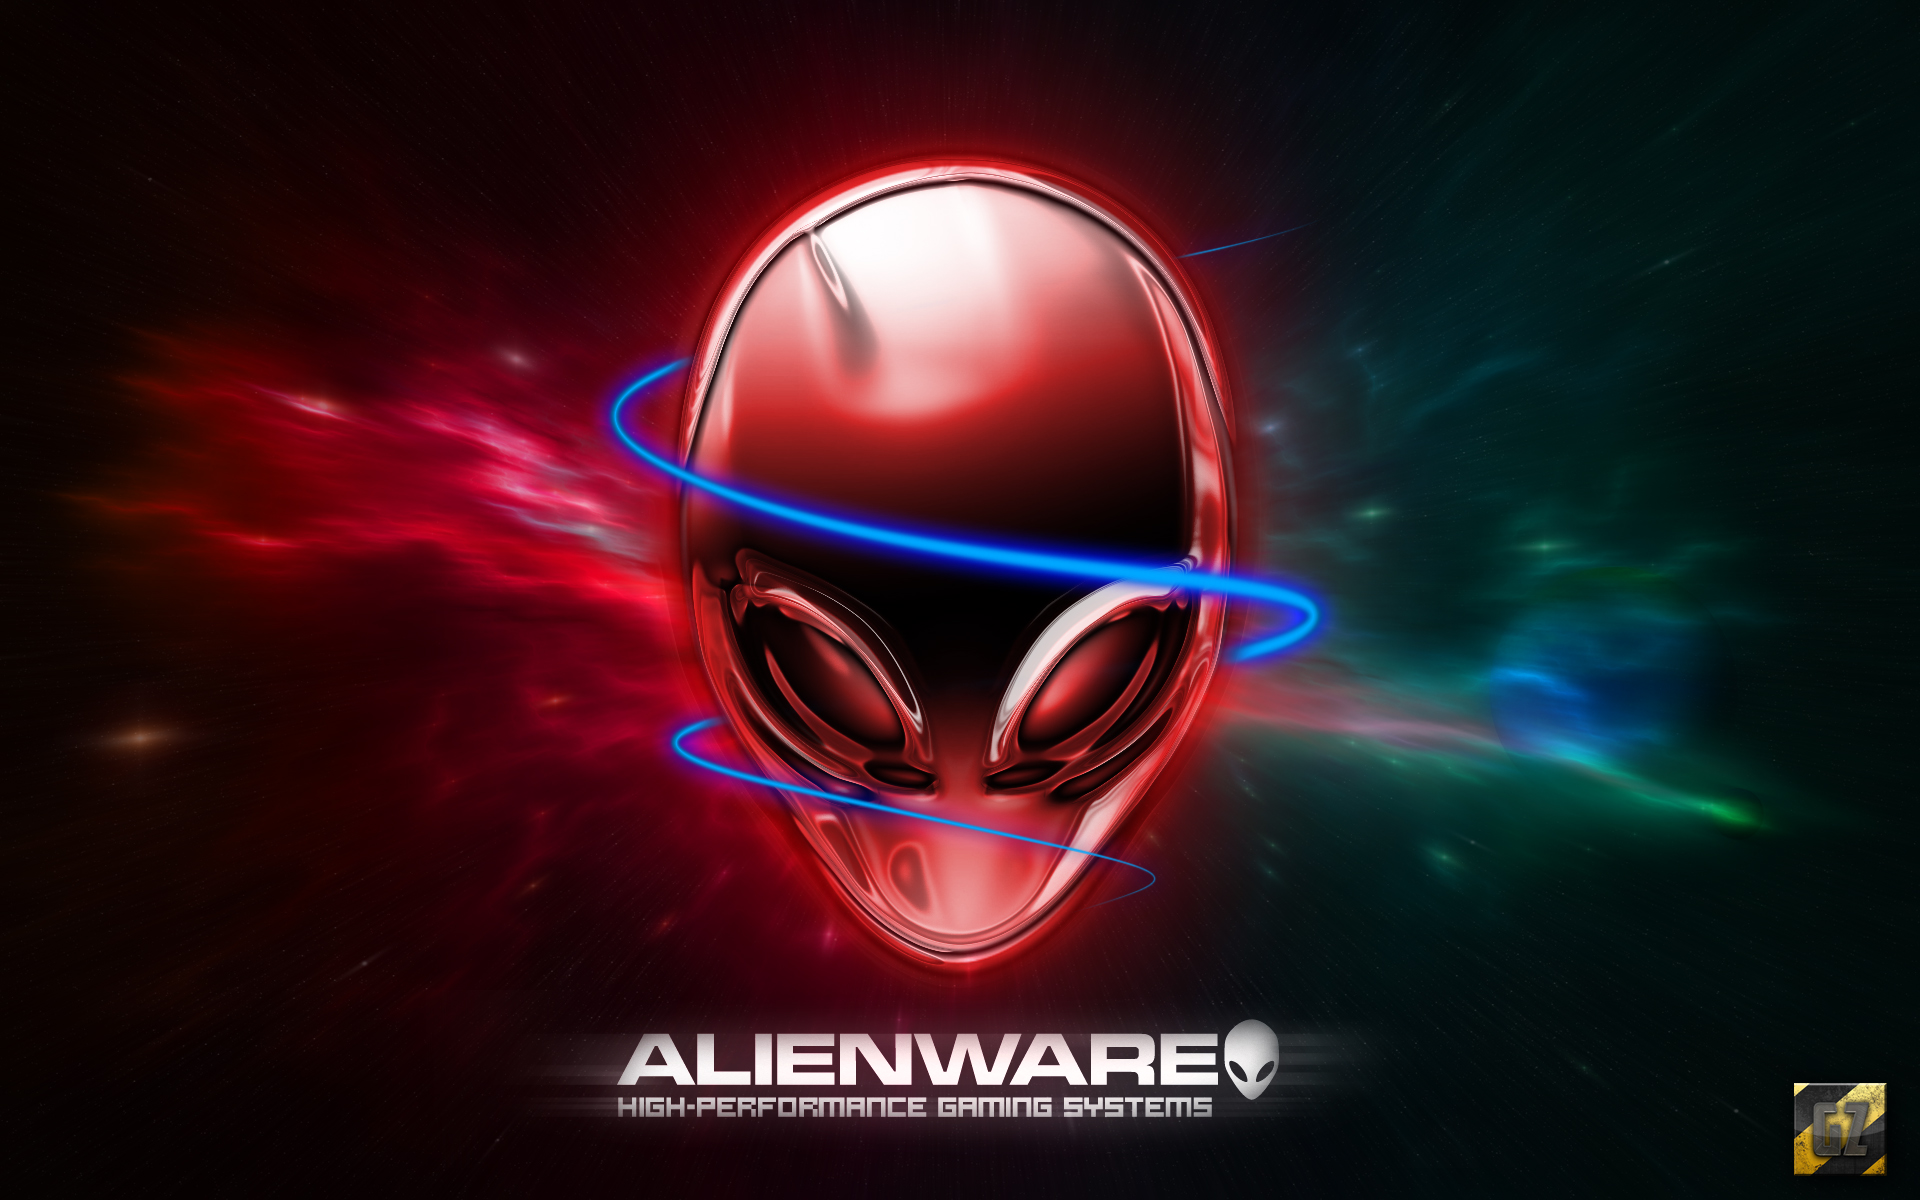 Alienware wallpapers for windows 7 wallpapersafari - 3d Moving Wallpapers For Windows 7